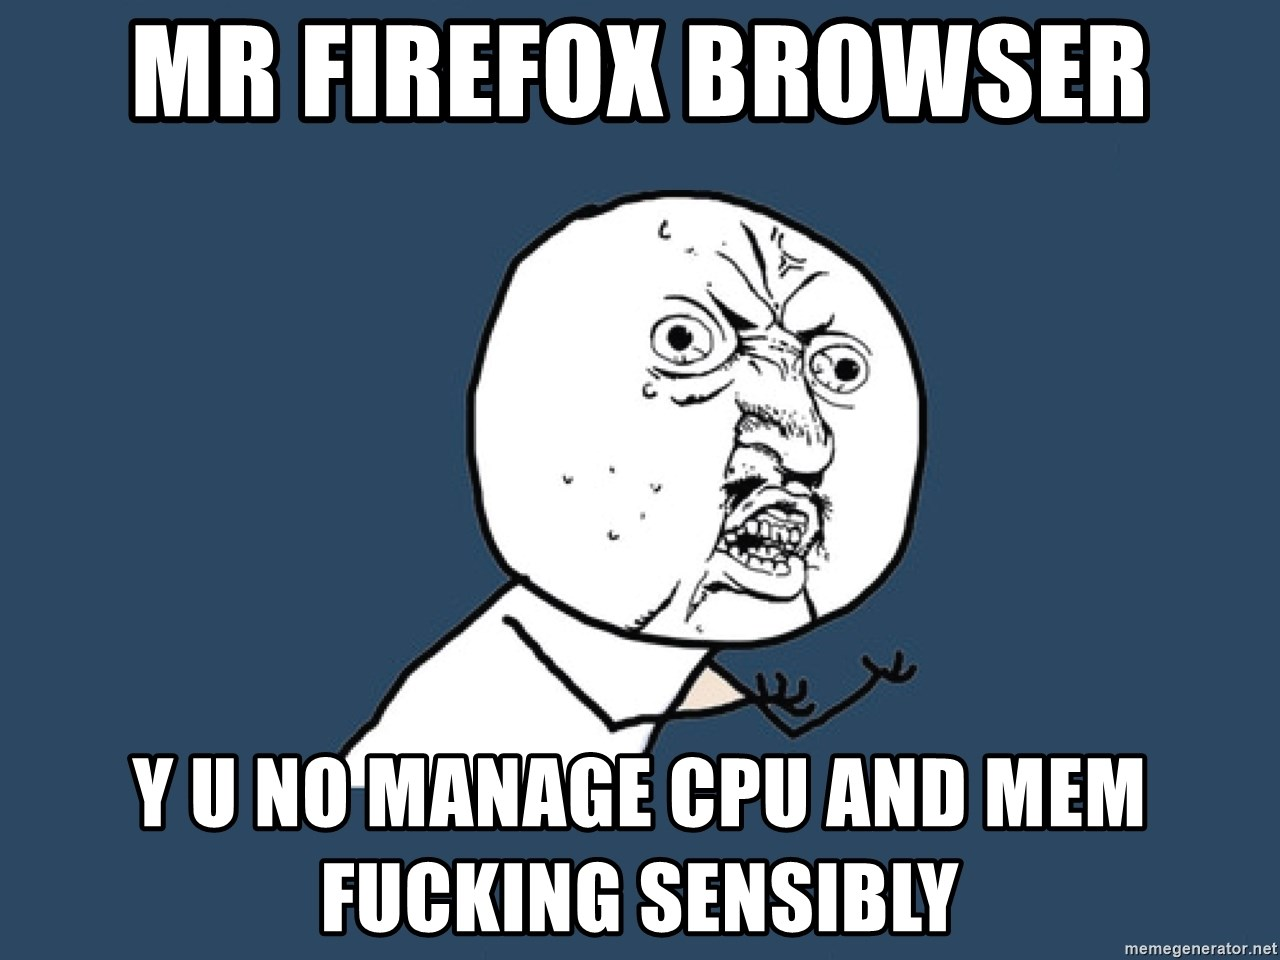 Y U No - Mr Firefox browser y u no manage cpu and mem fucking sensibly